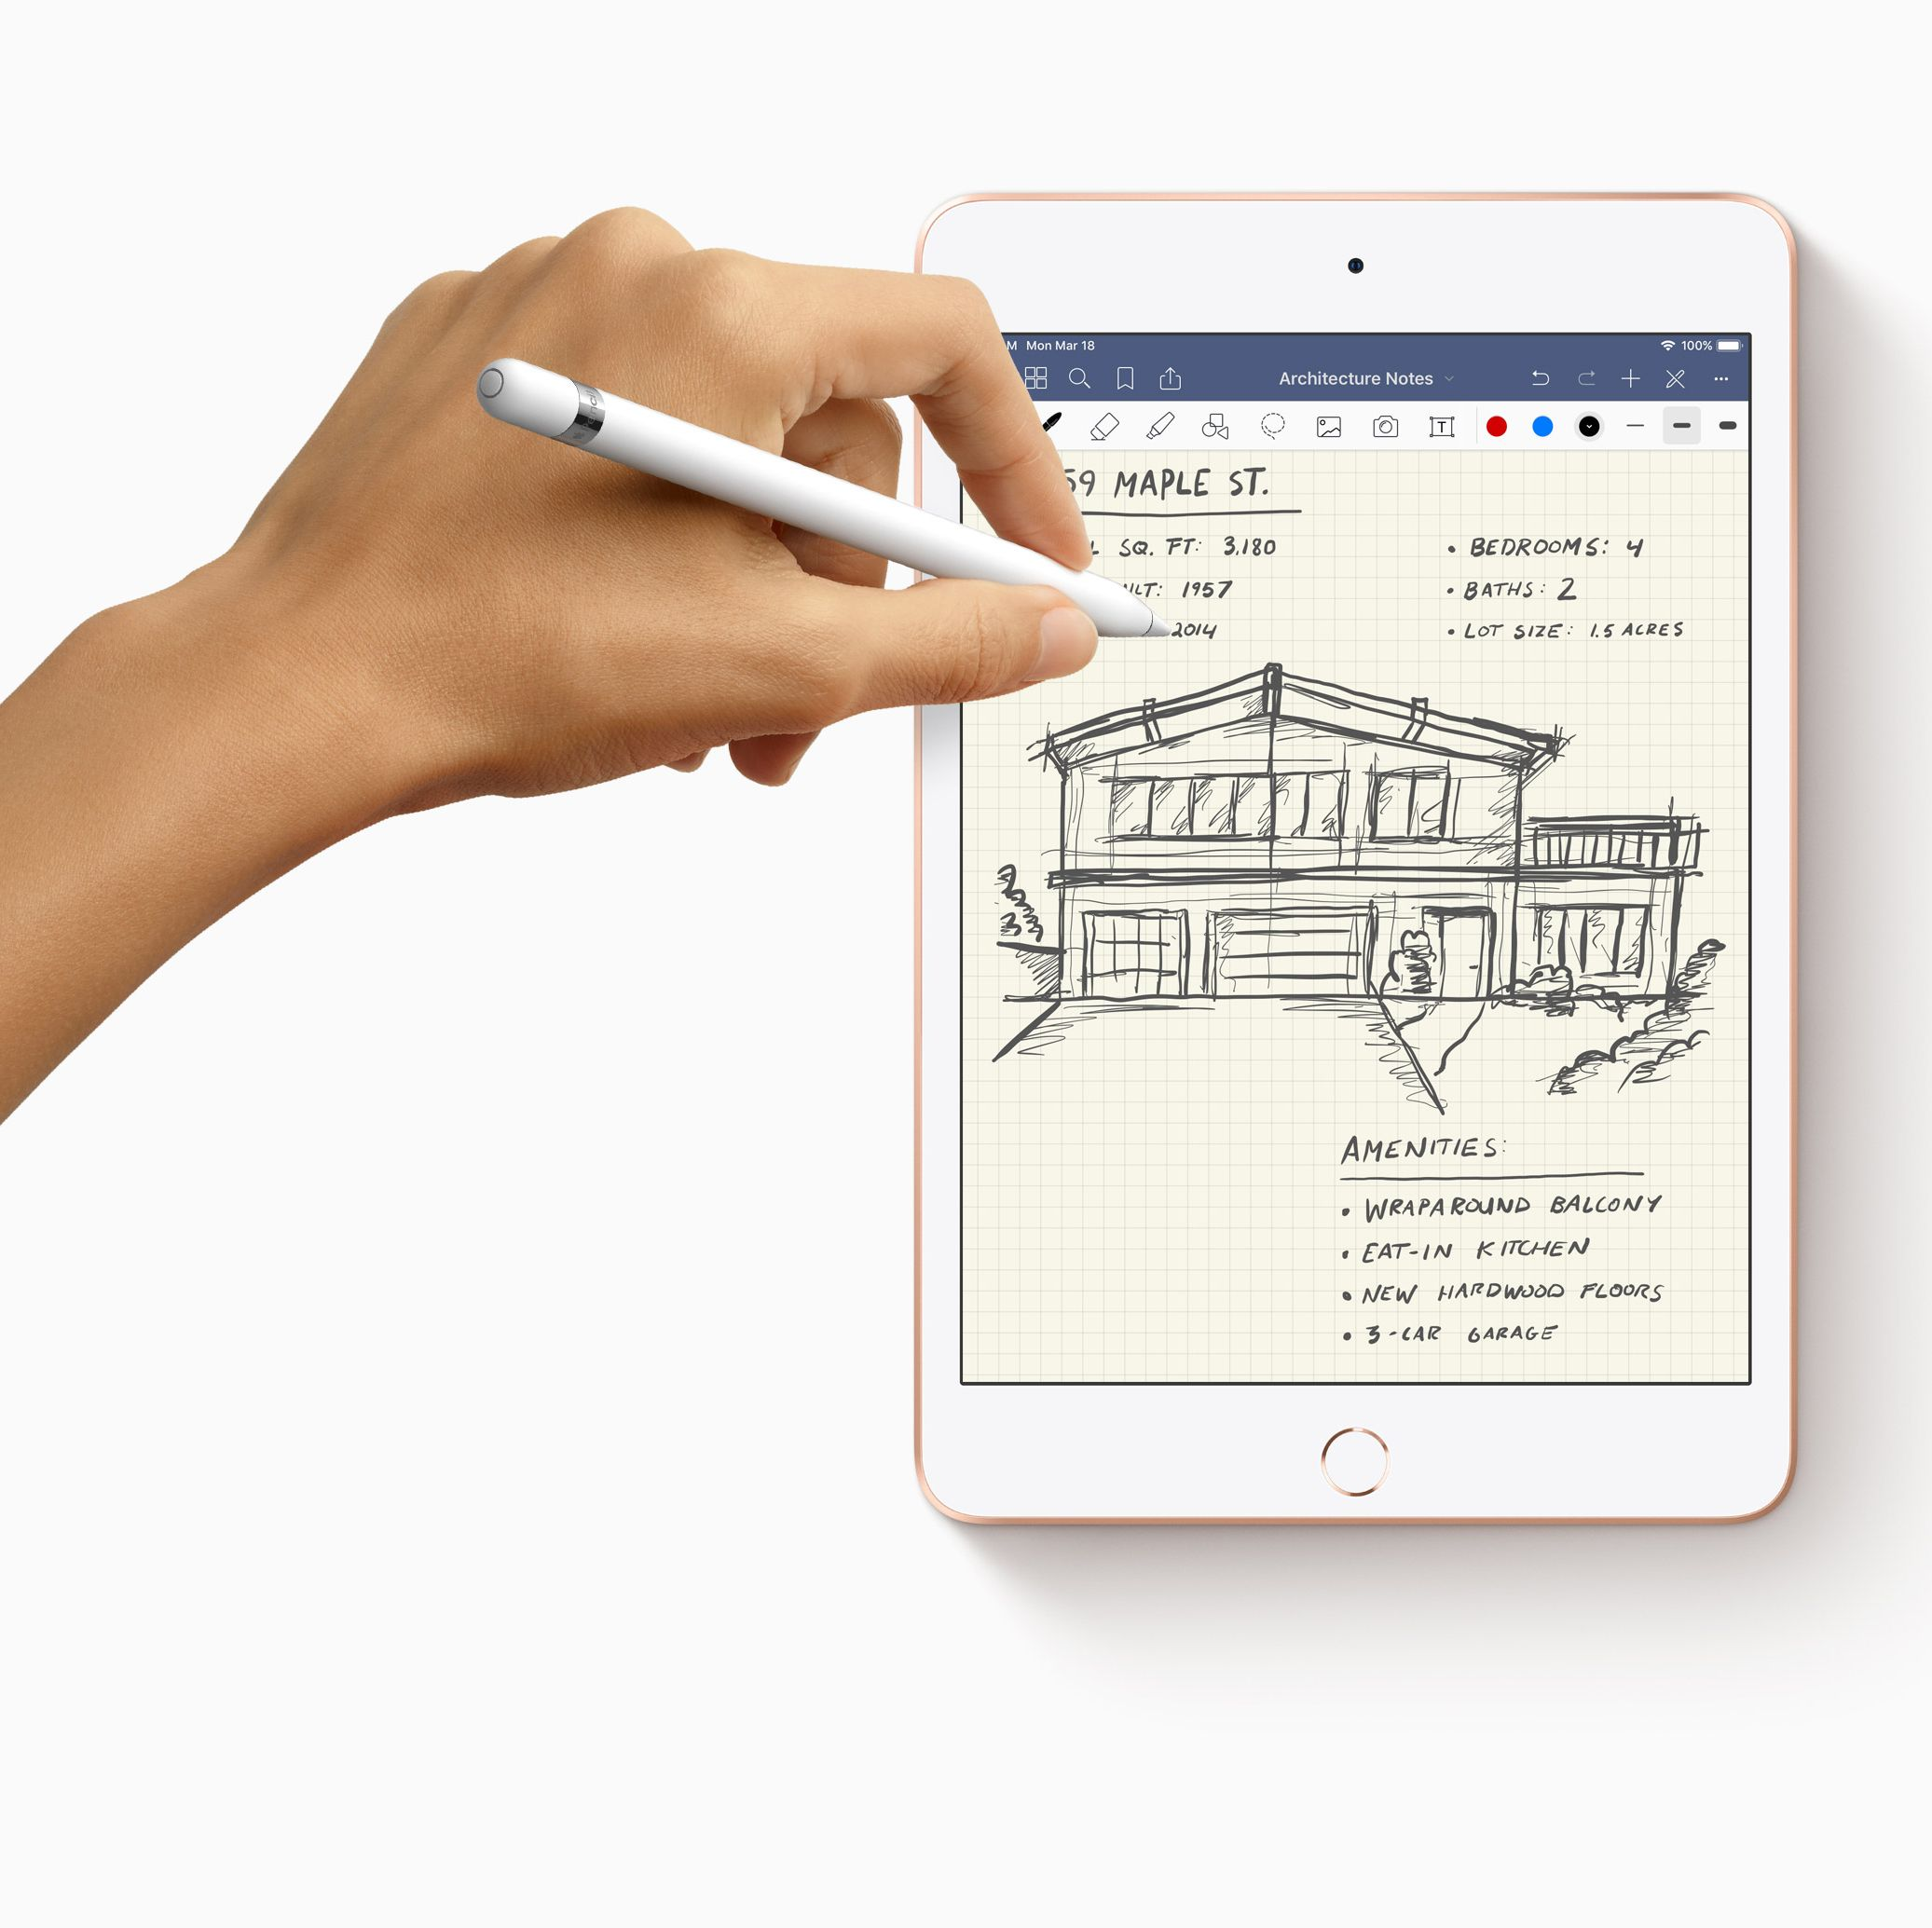 Here's how you can get the new Apple iPad Air for £35 a month